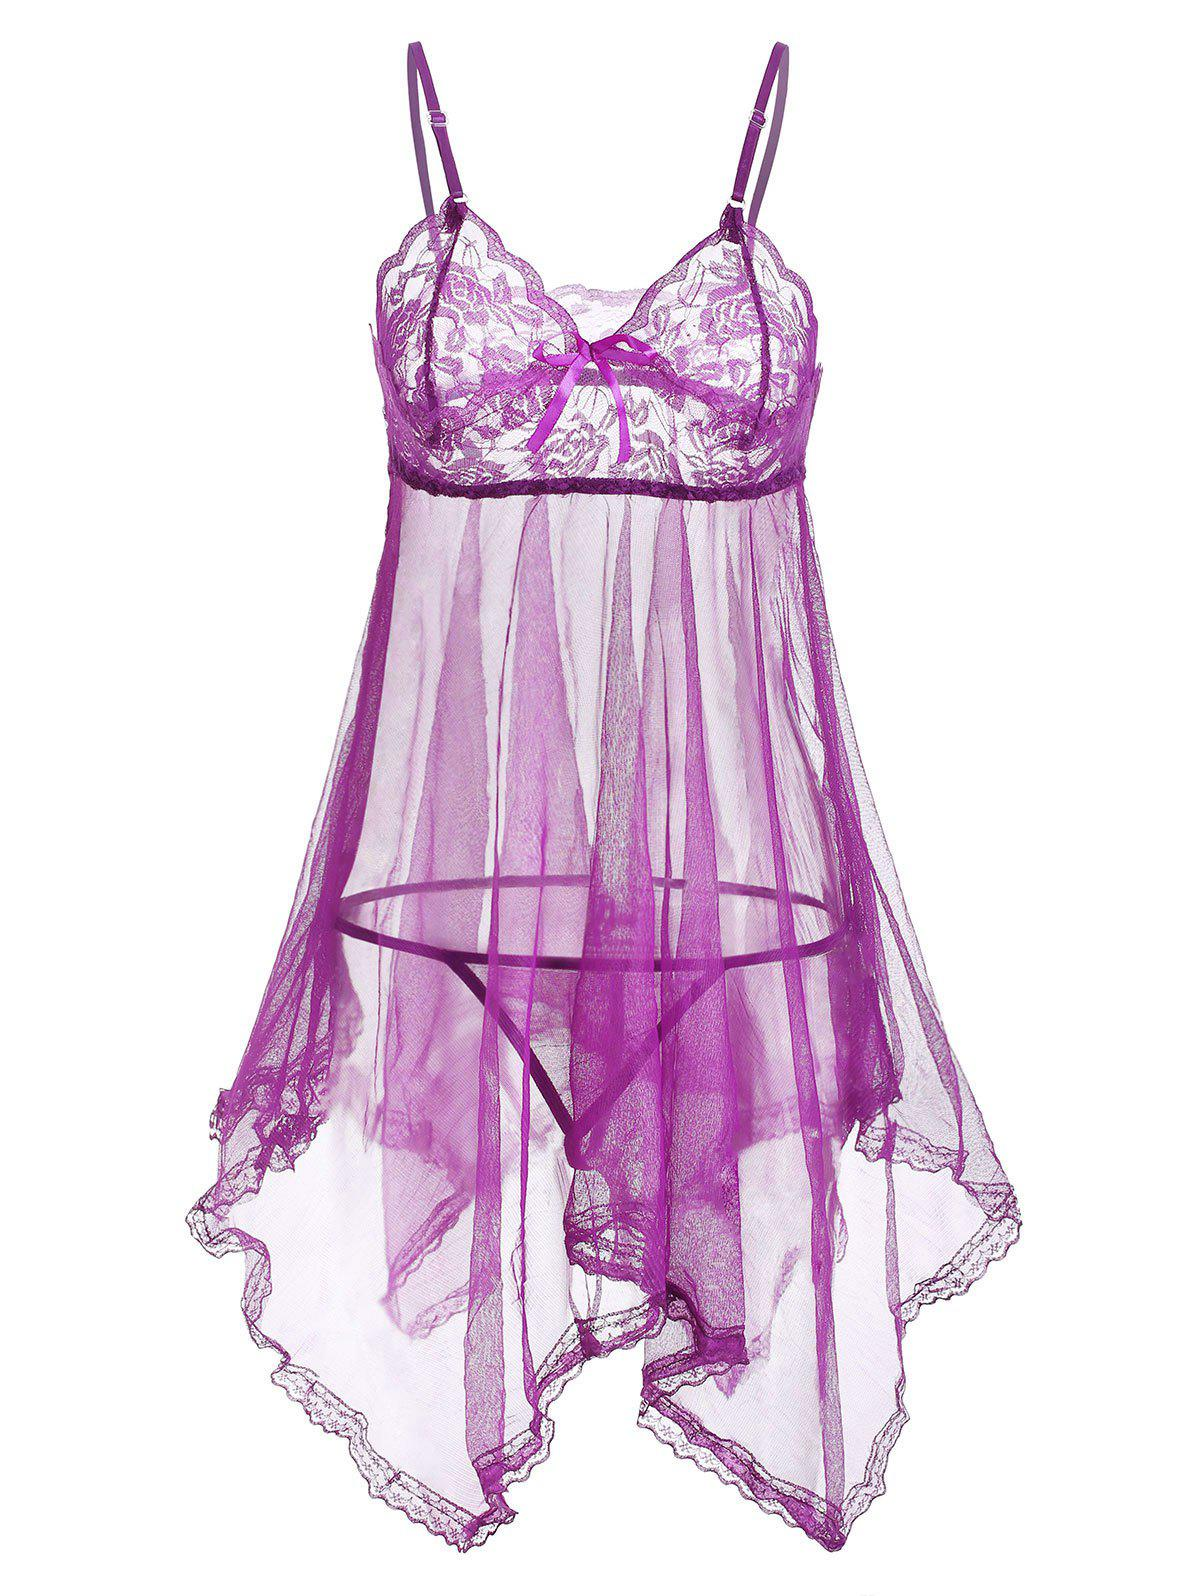 Lace Panel Handkerchief Sheer Mesh Lingerie Babydoll - PURPLE ONE SIZE